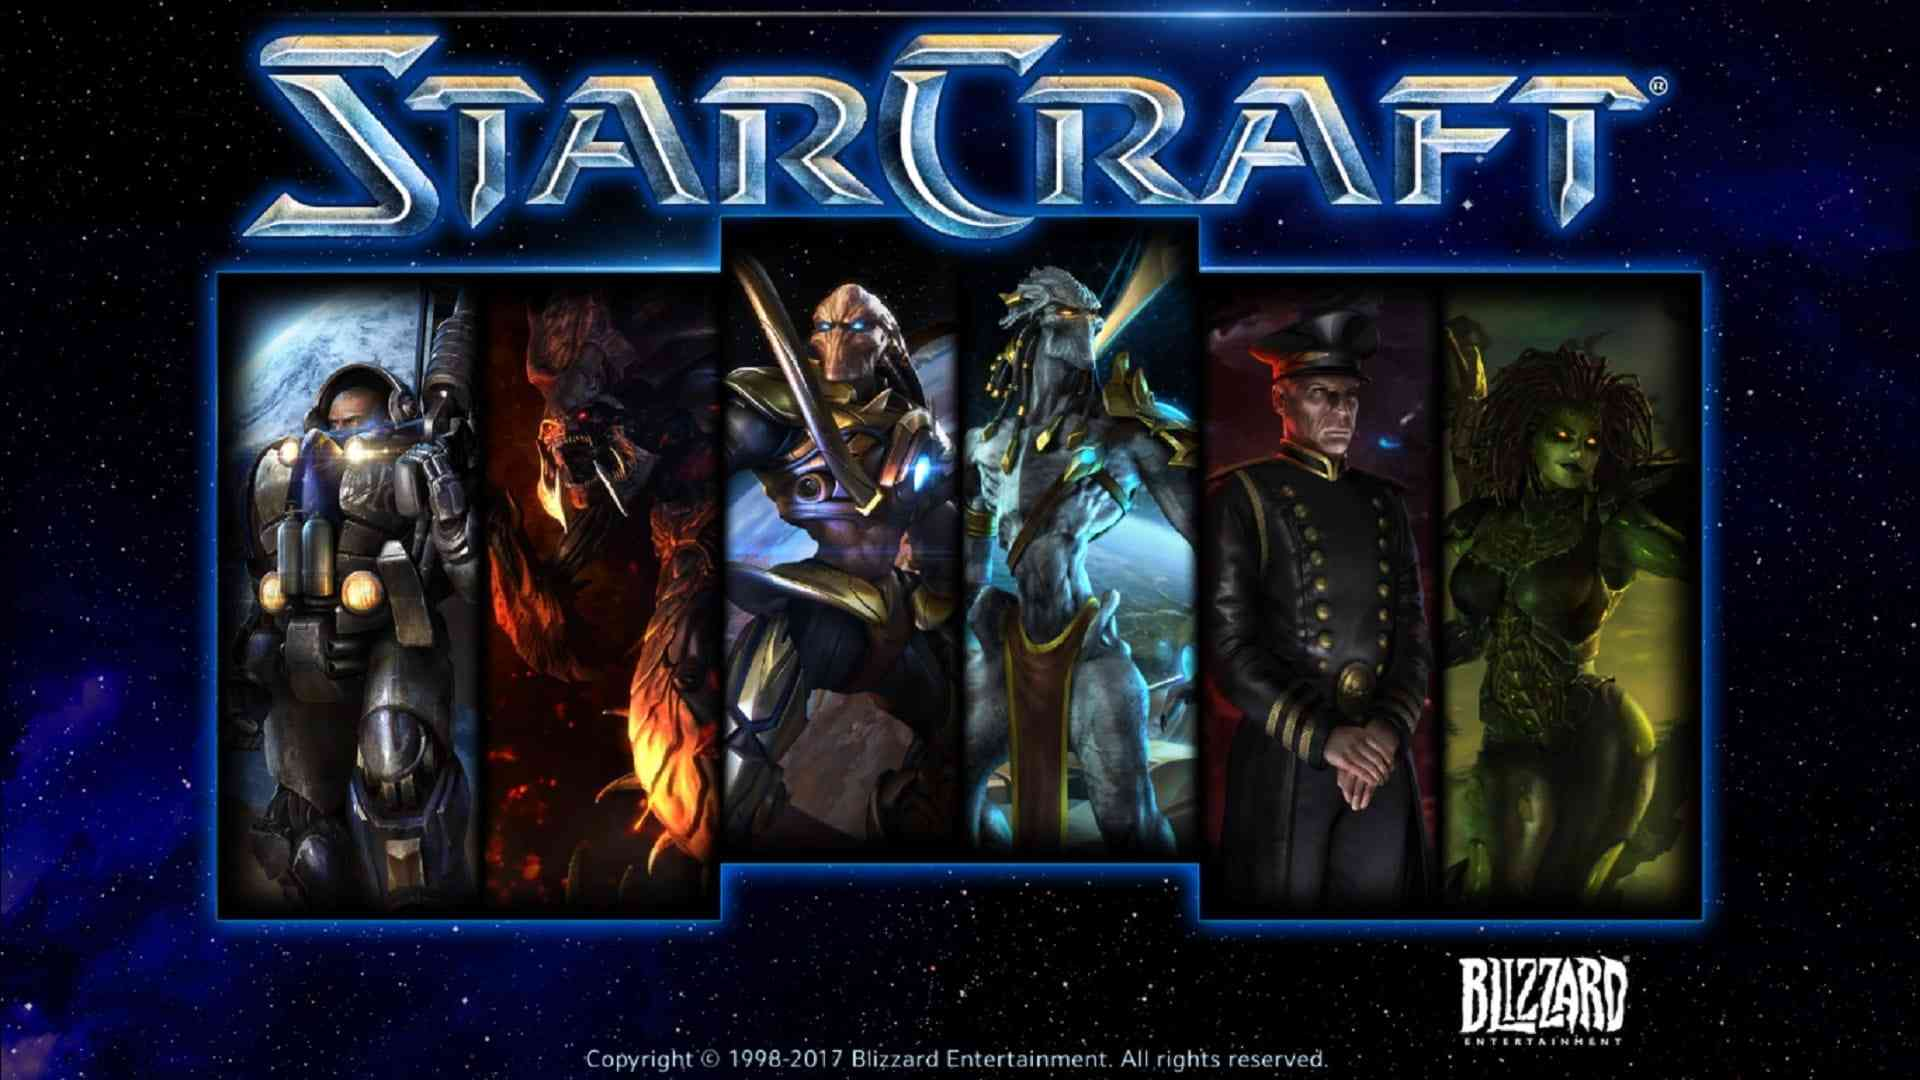 StarCraft First Person Shooter Has Been Canceled By Blizzard